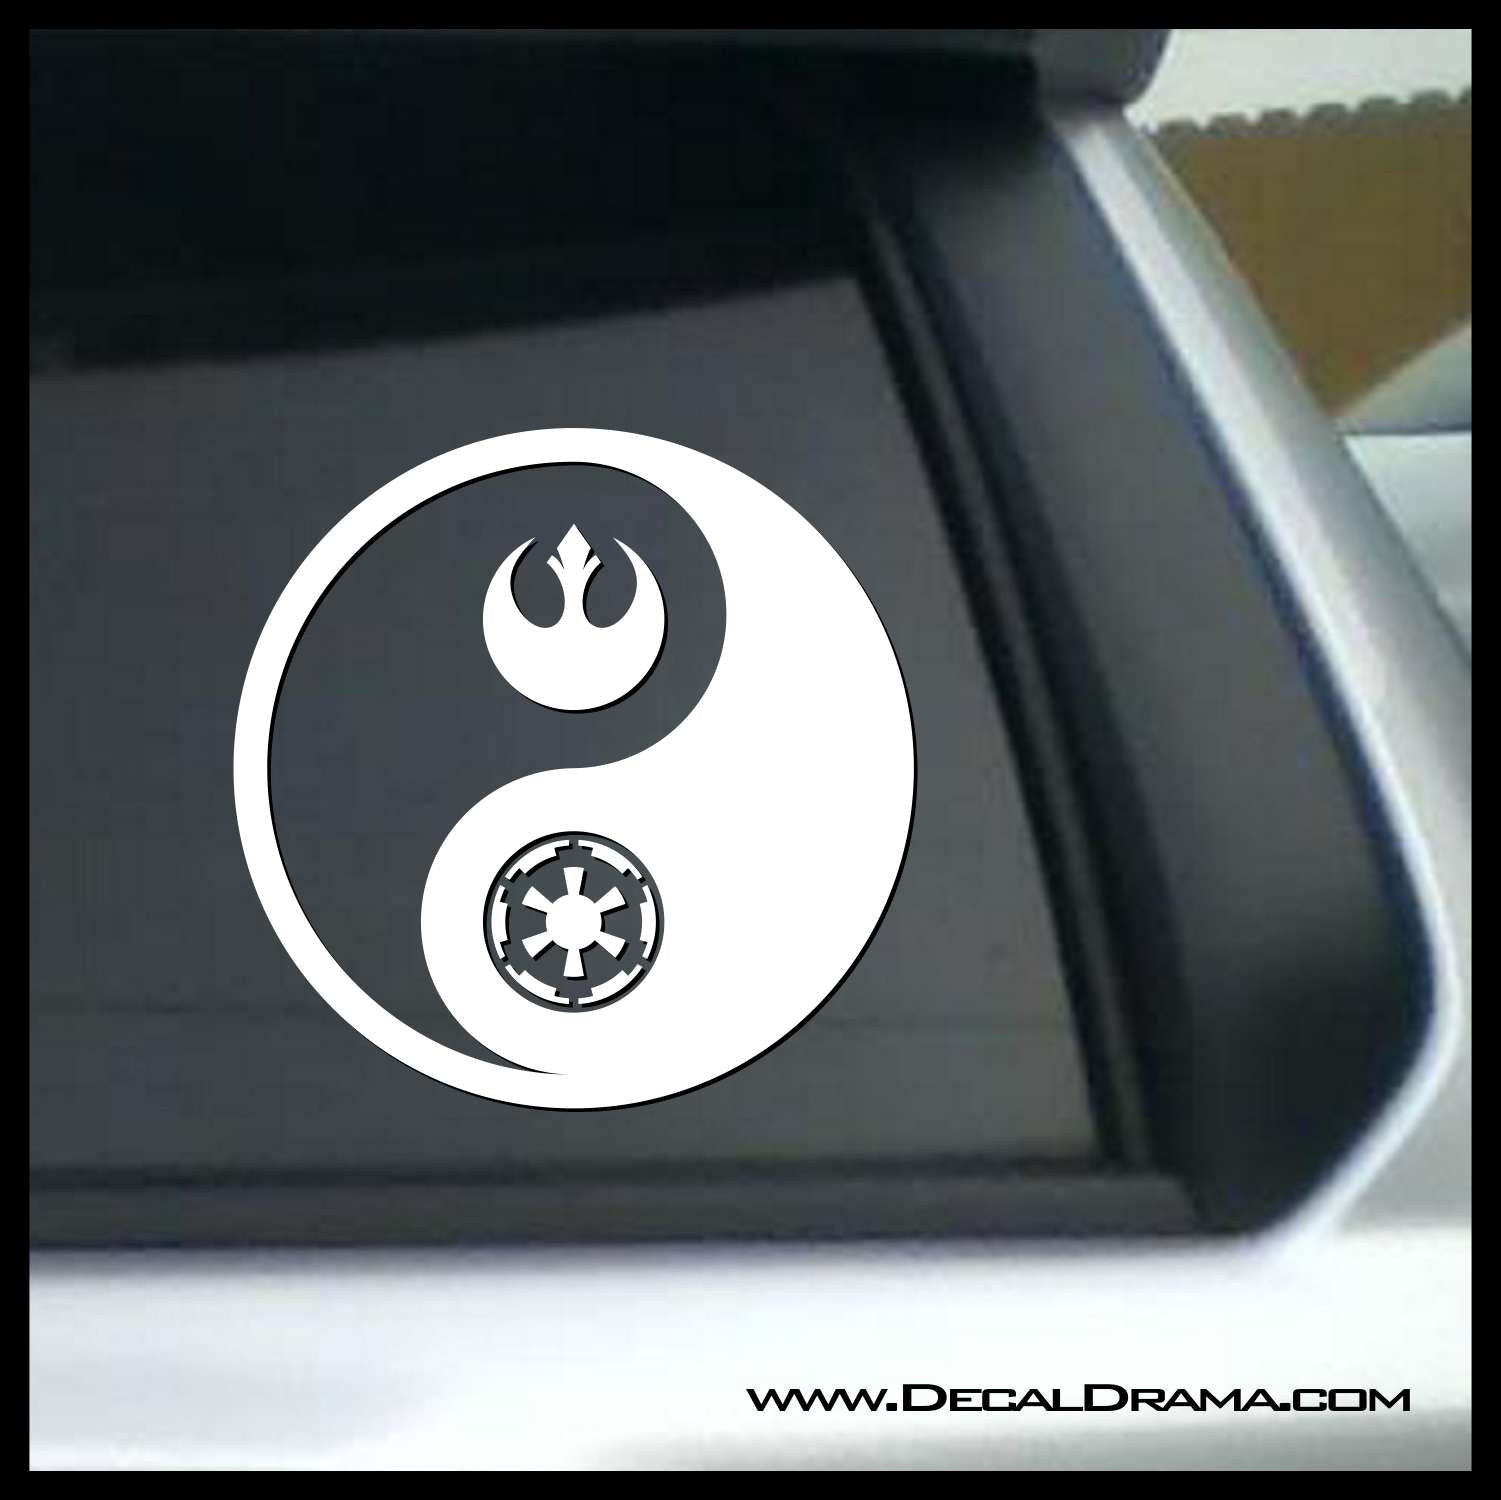 Rebel Alliance Galactic Empire Yin Yang, Star Wars-Inspired Fan Art Vinyl Wall Decal